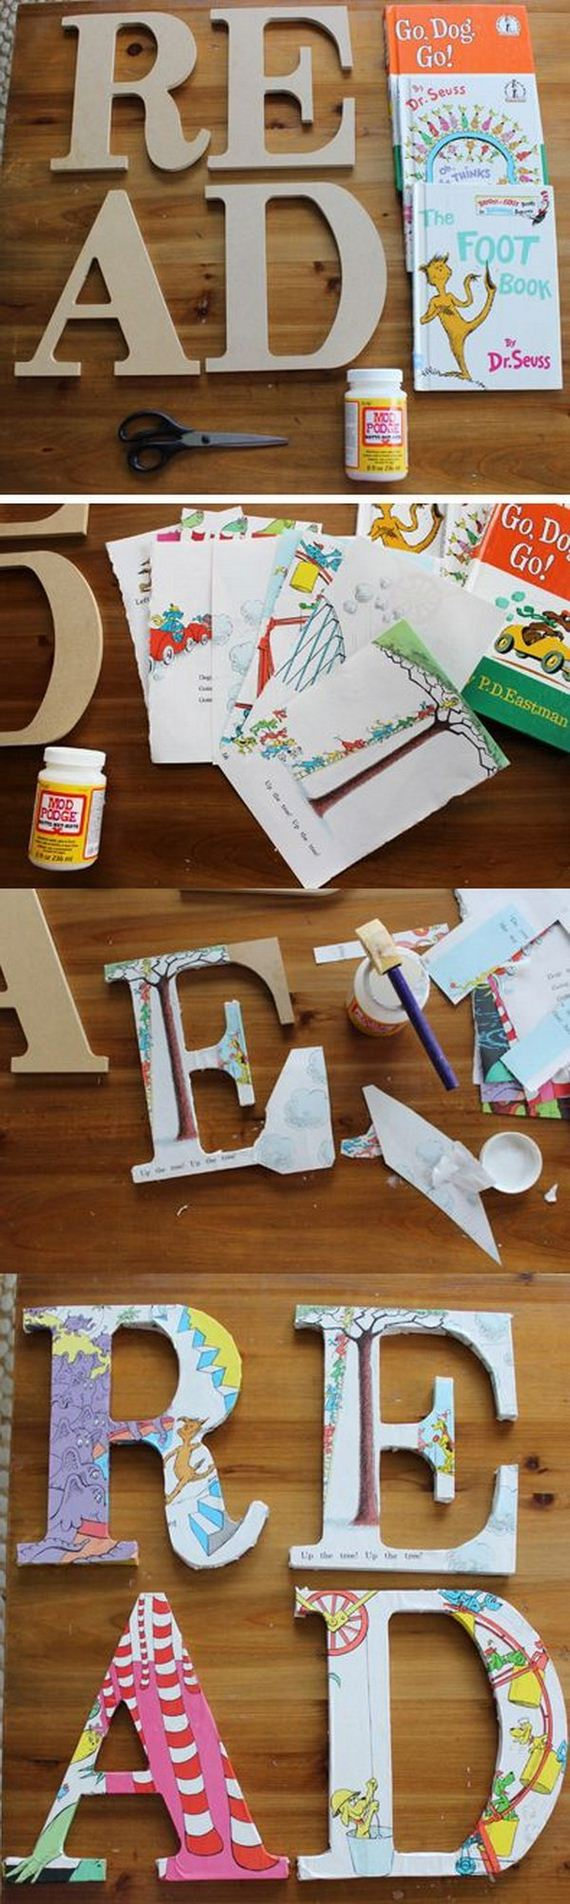 40-diy-letter-ideas-tutorials